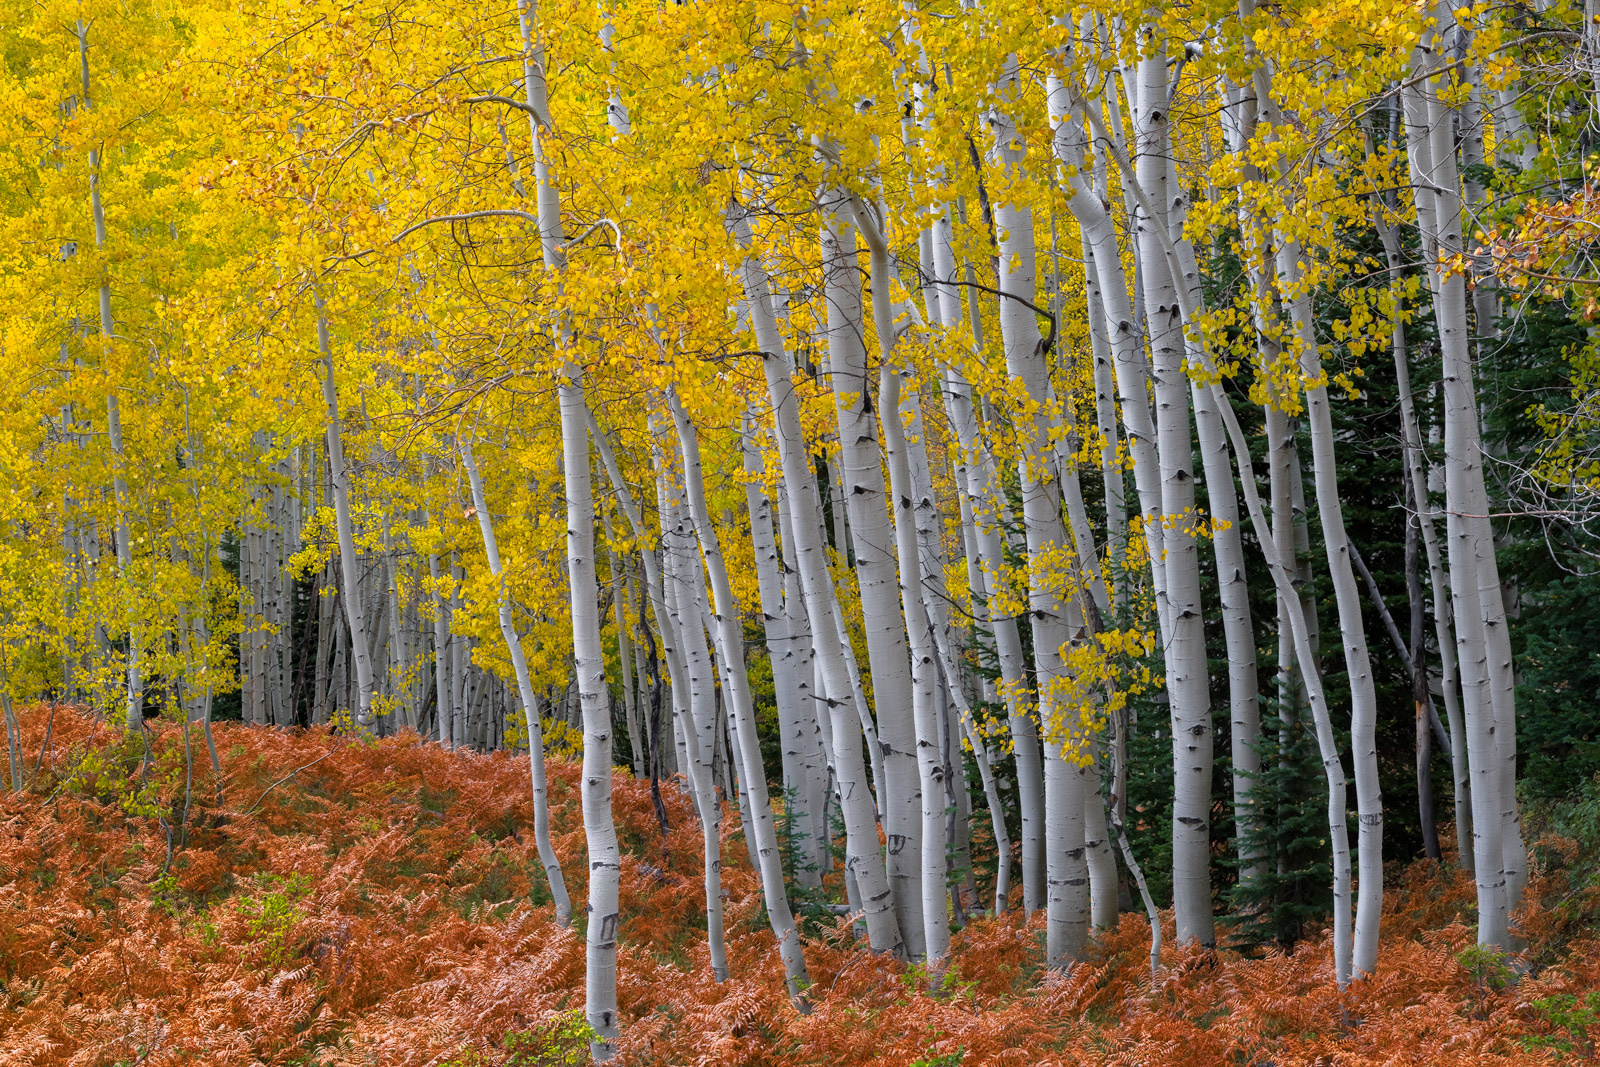 Colorado, Crested Butte, Aspen, Trees, Fall, Color, limited edition, photograph, fine art, landscape, fall color, photo